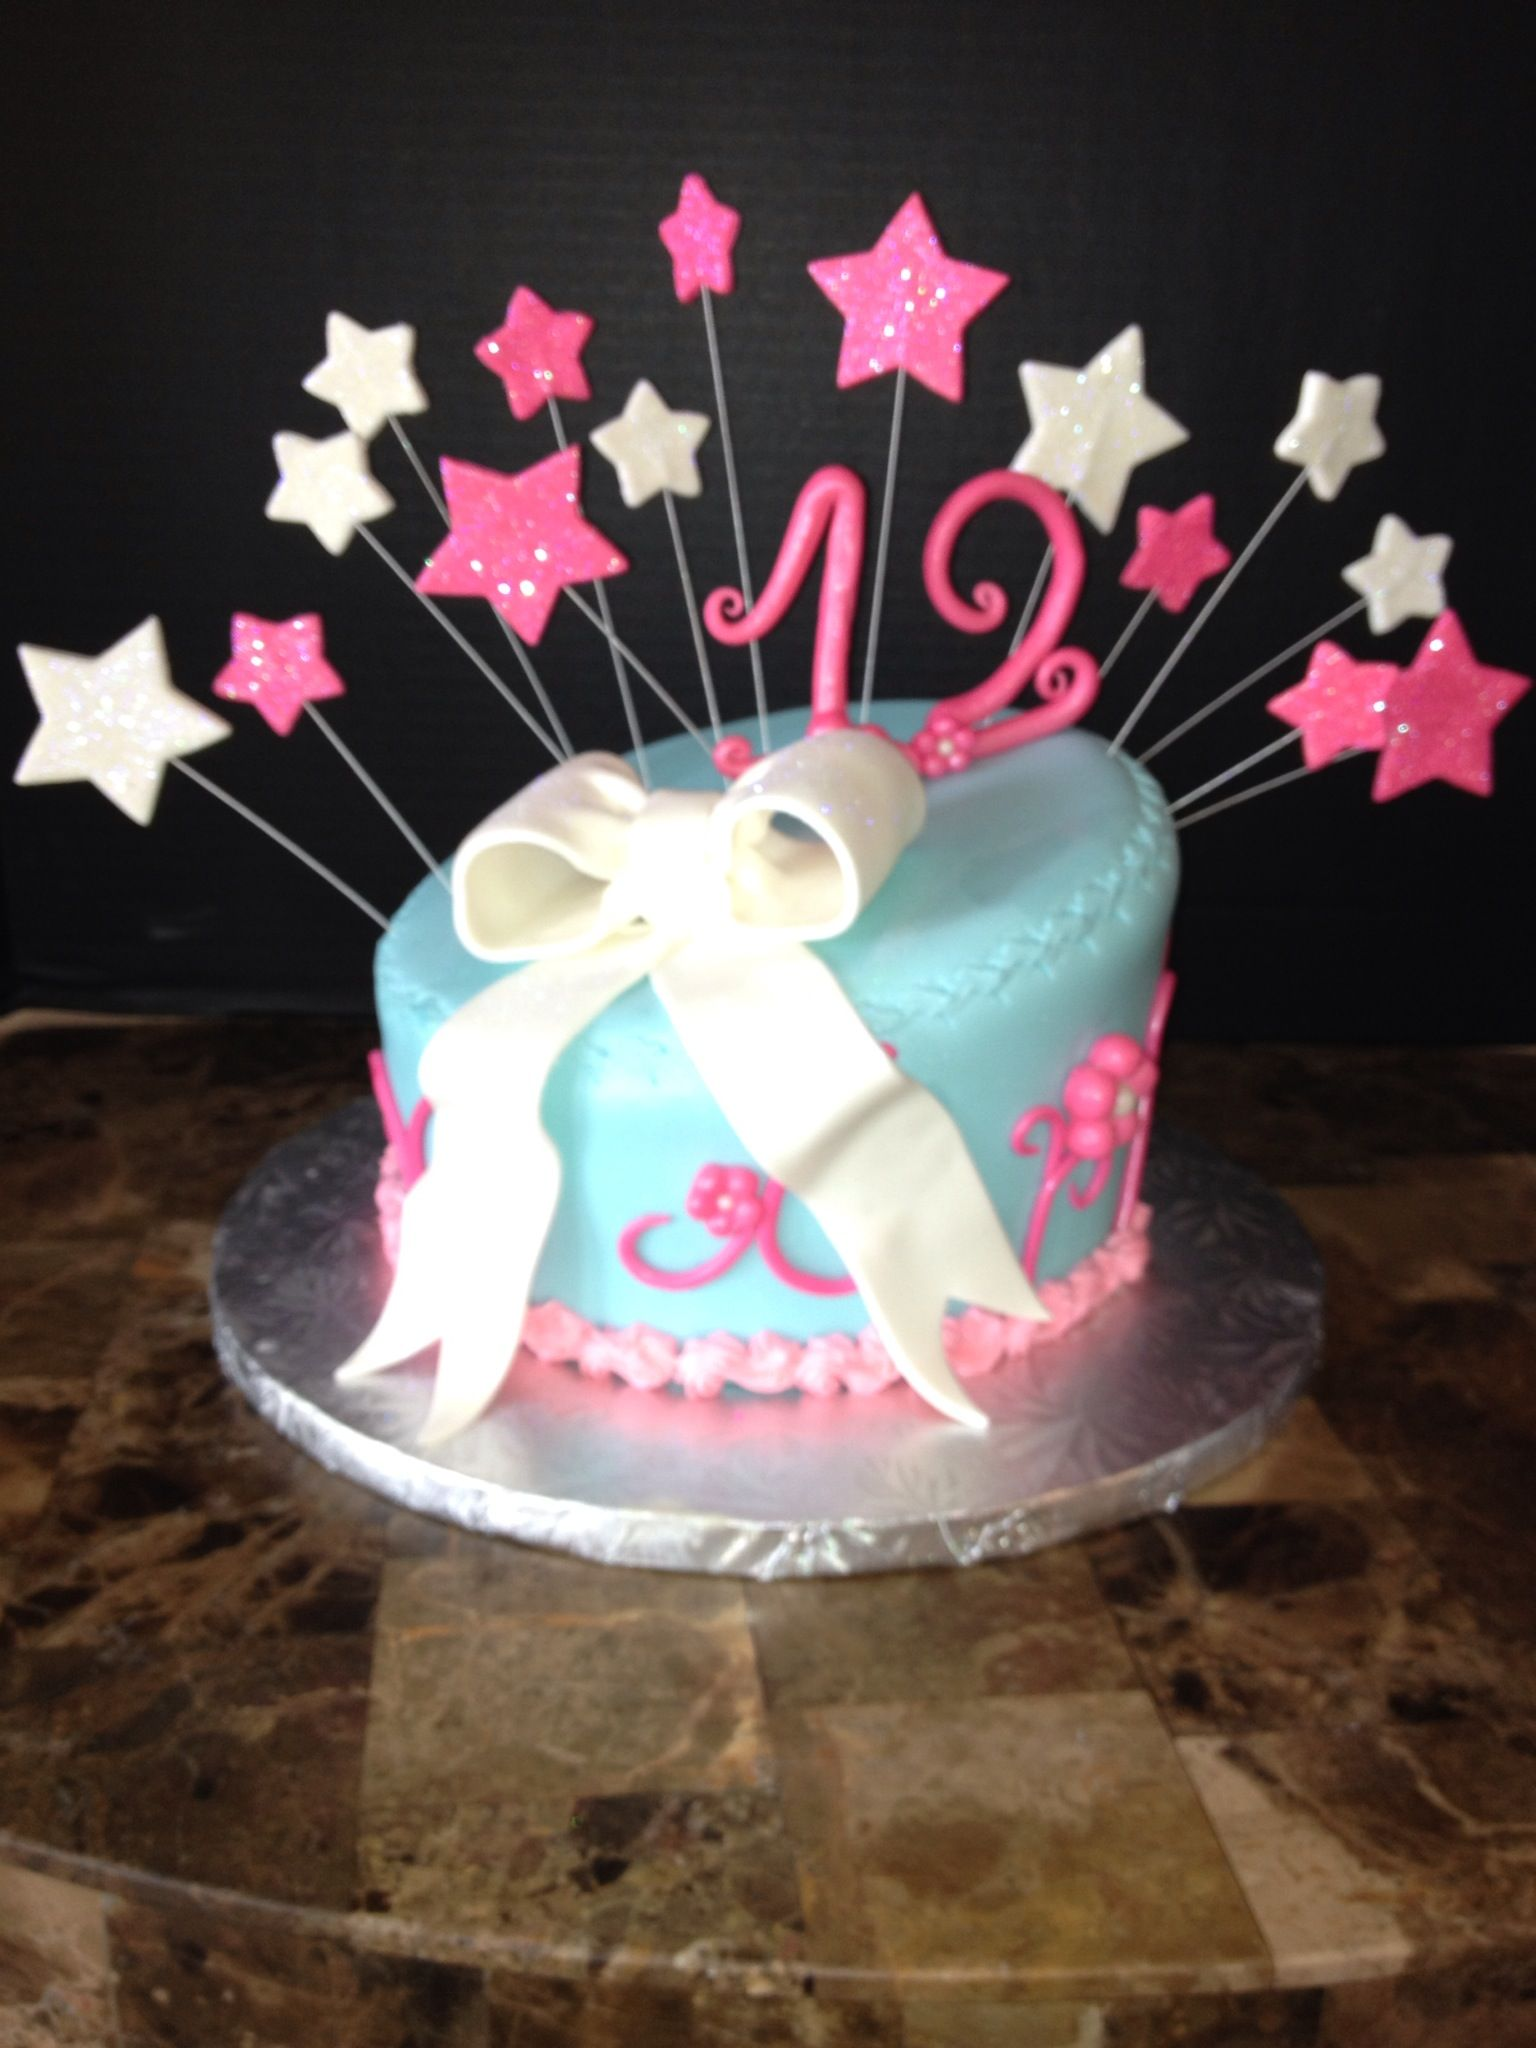 12th Birthday Cake Simple And Sweet